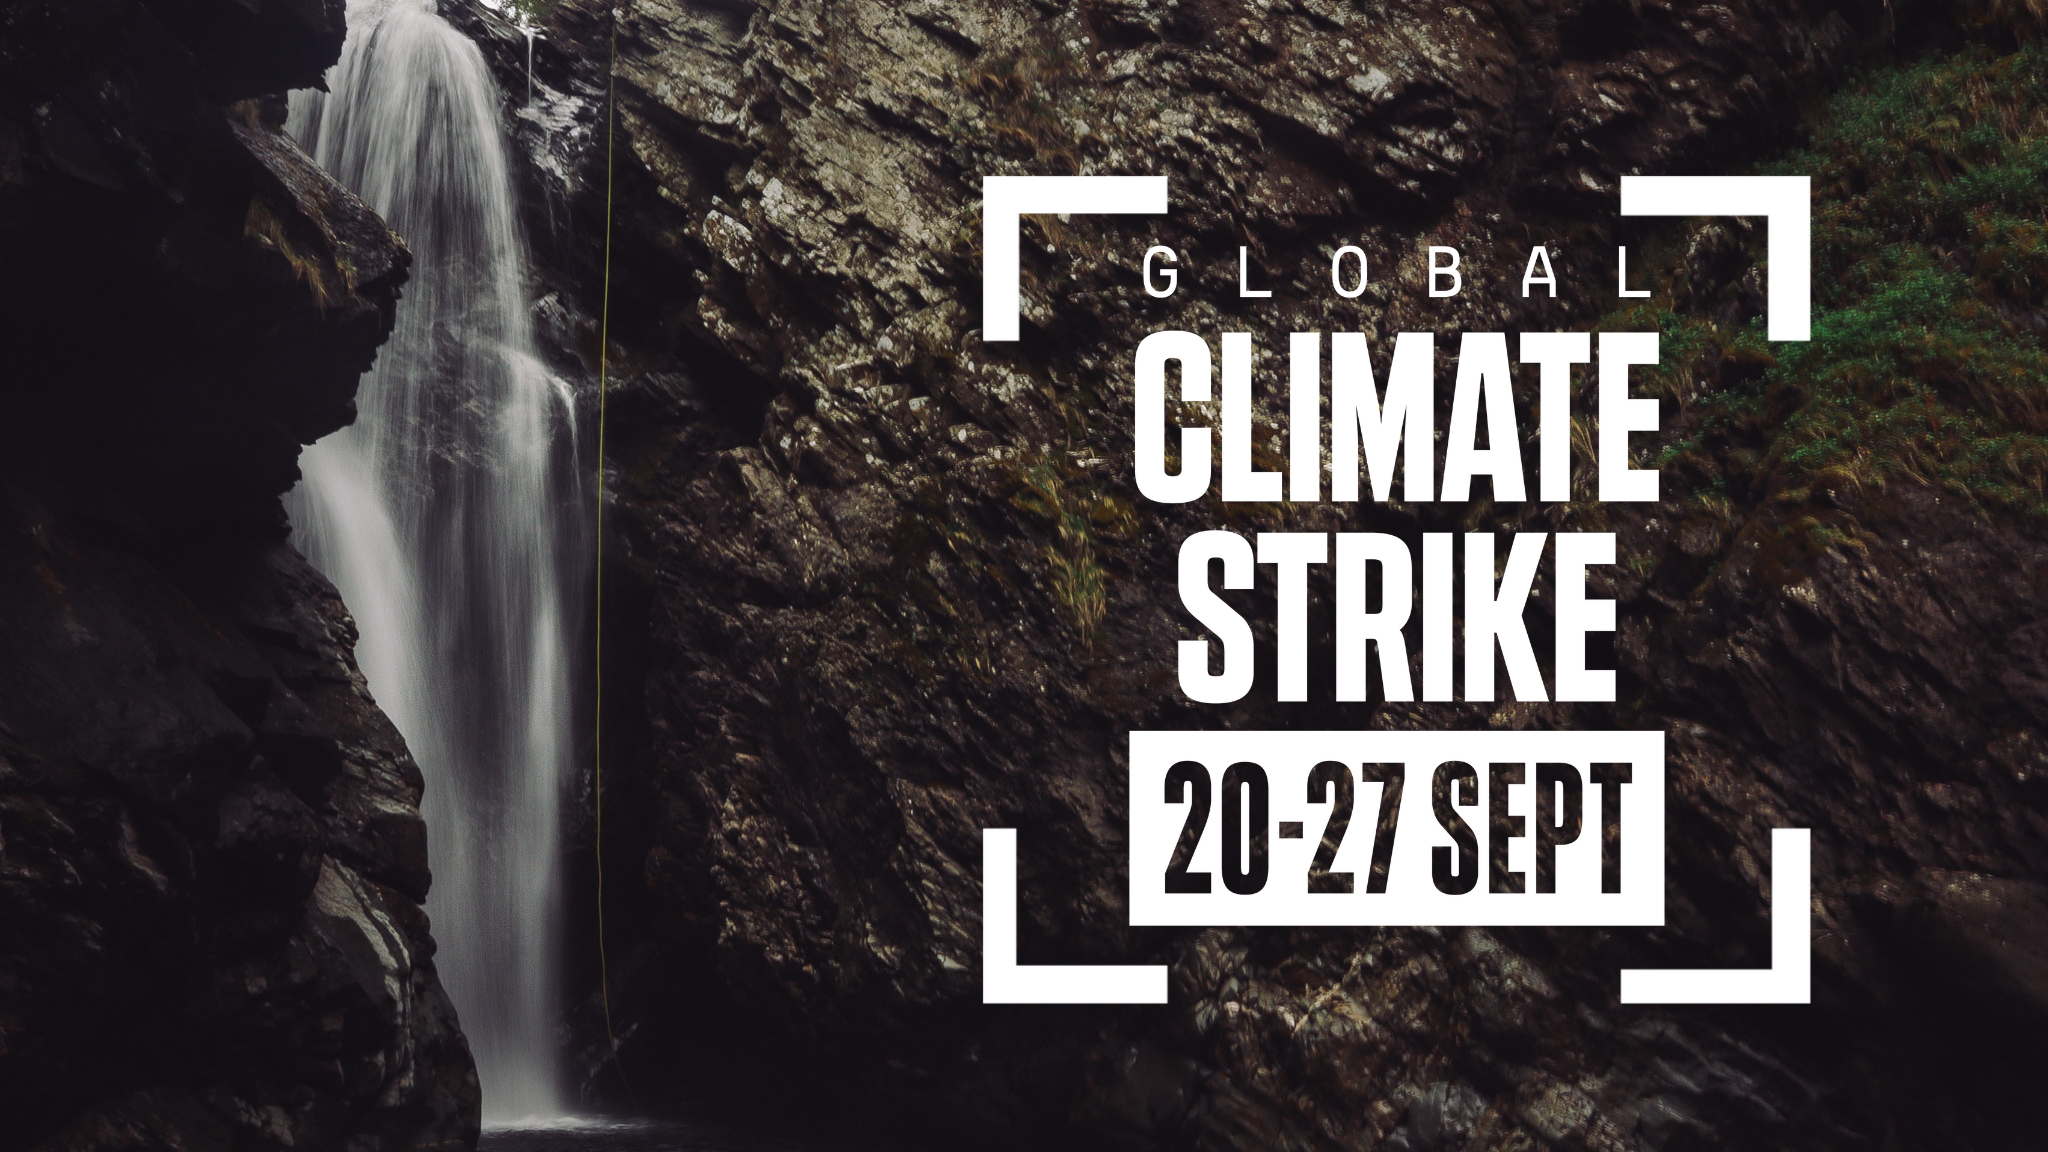 Climate strike, The Adventure Photographers, Adventure Photography